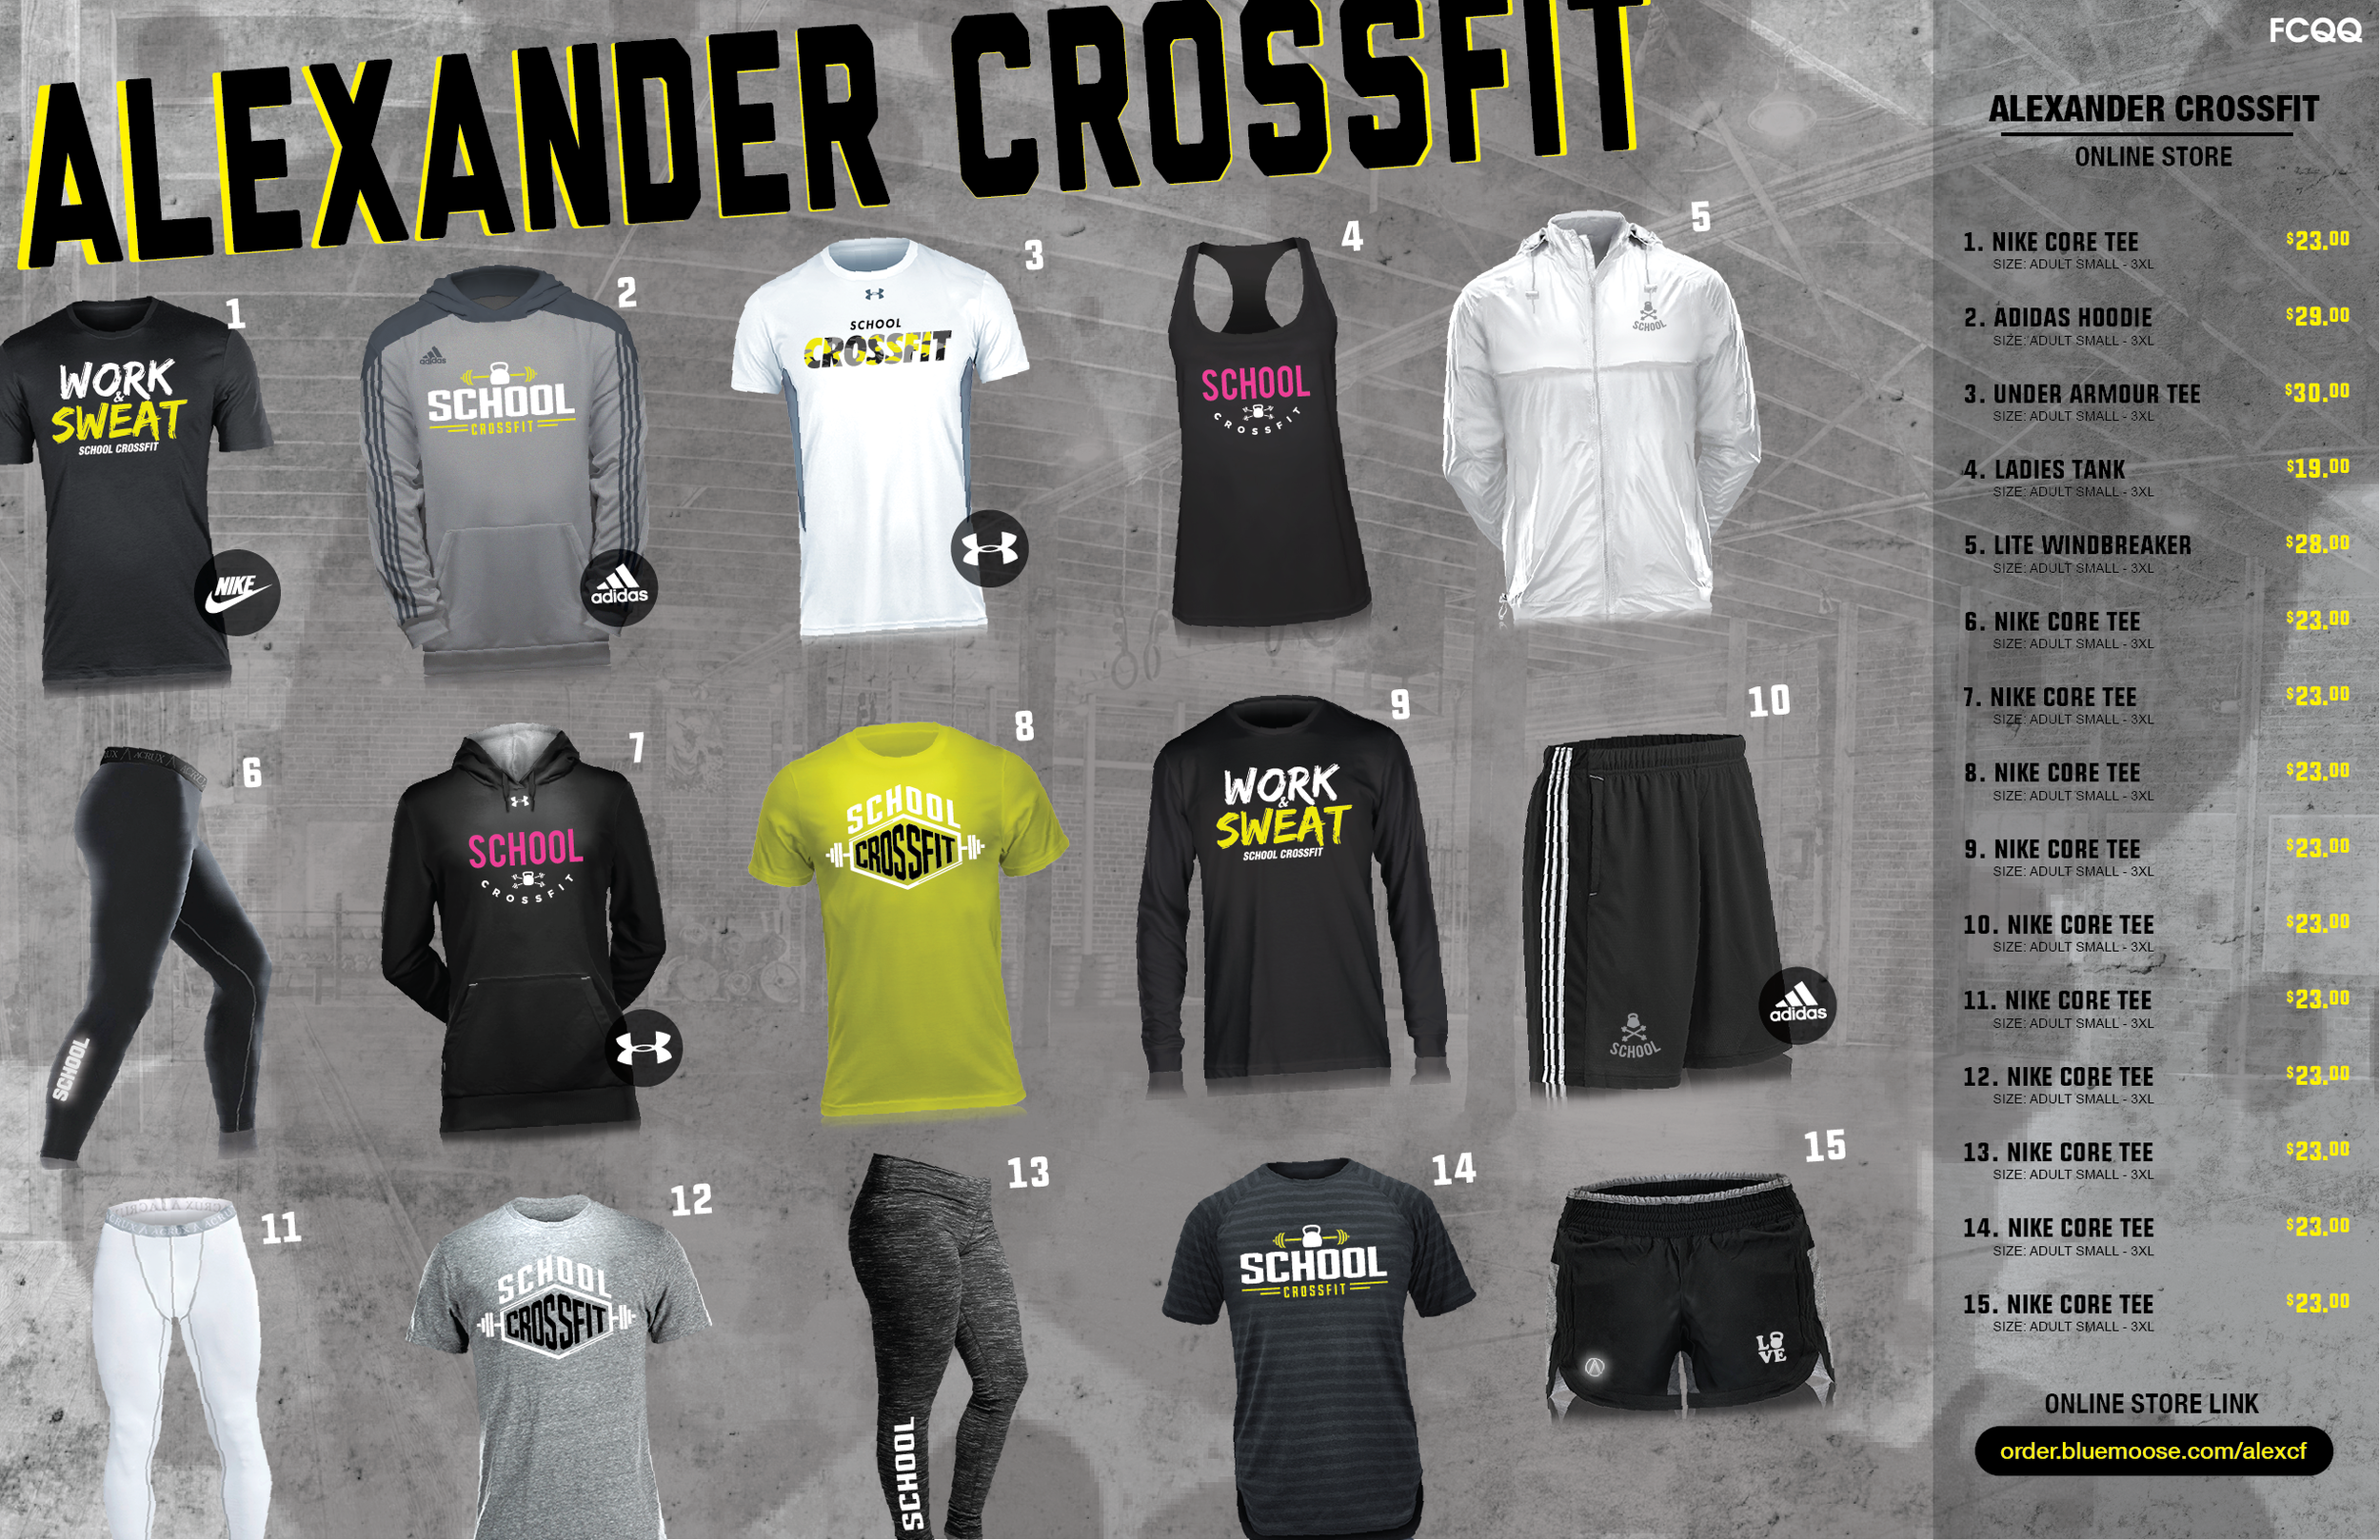 CrossFit-PRINT_Online store image.png